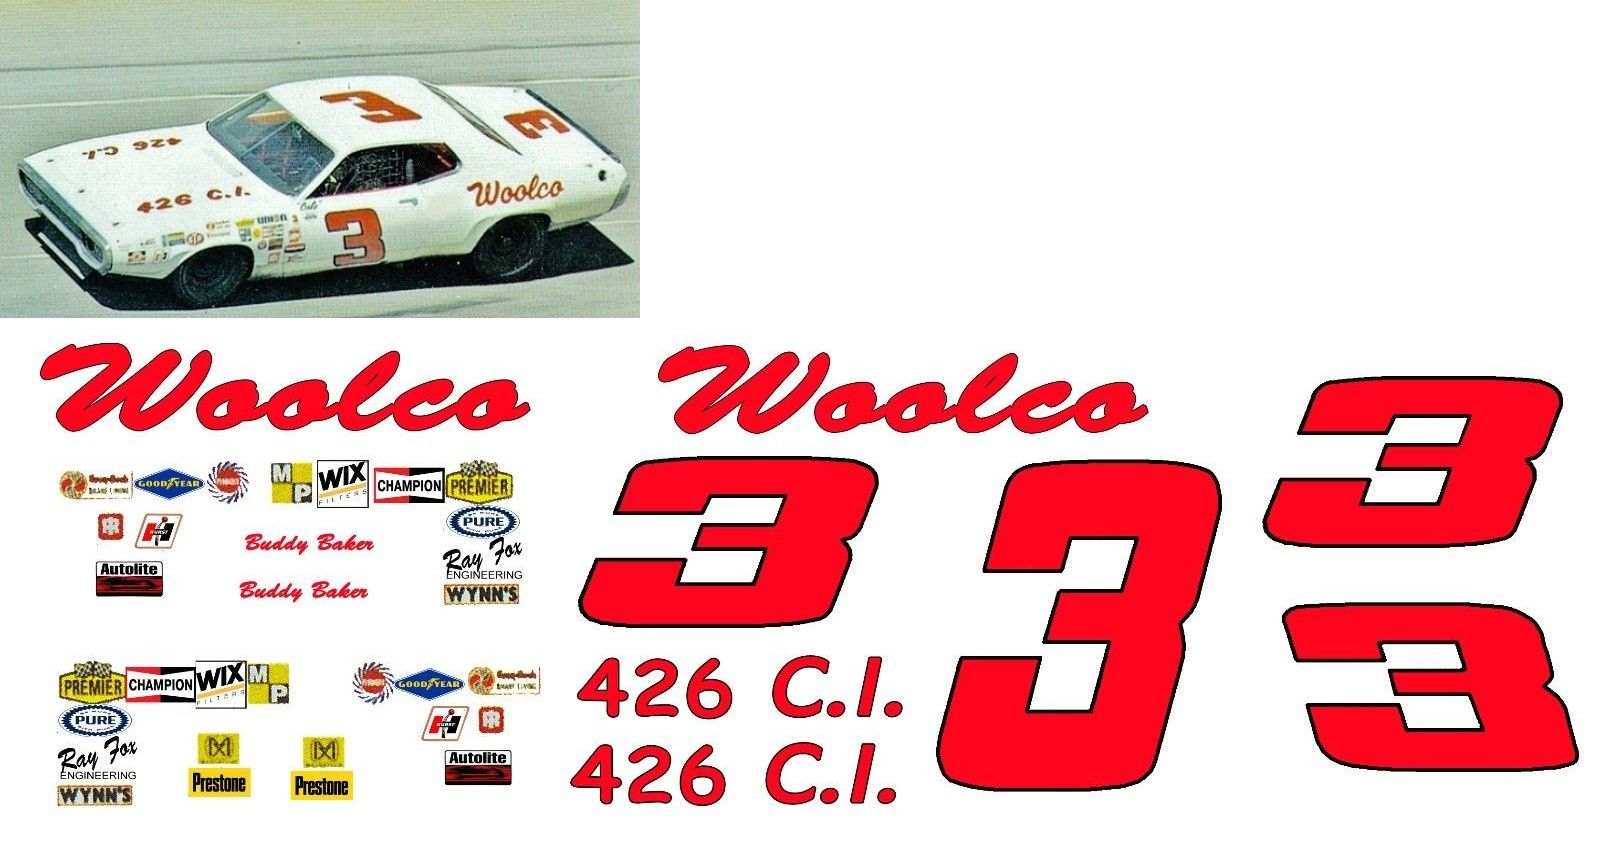 3 Buddy Baker Woolco Plymouth 1 16th Scale Decals Plymouth Buddy Toy Car